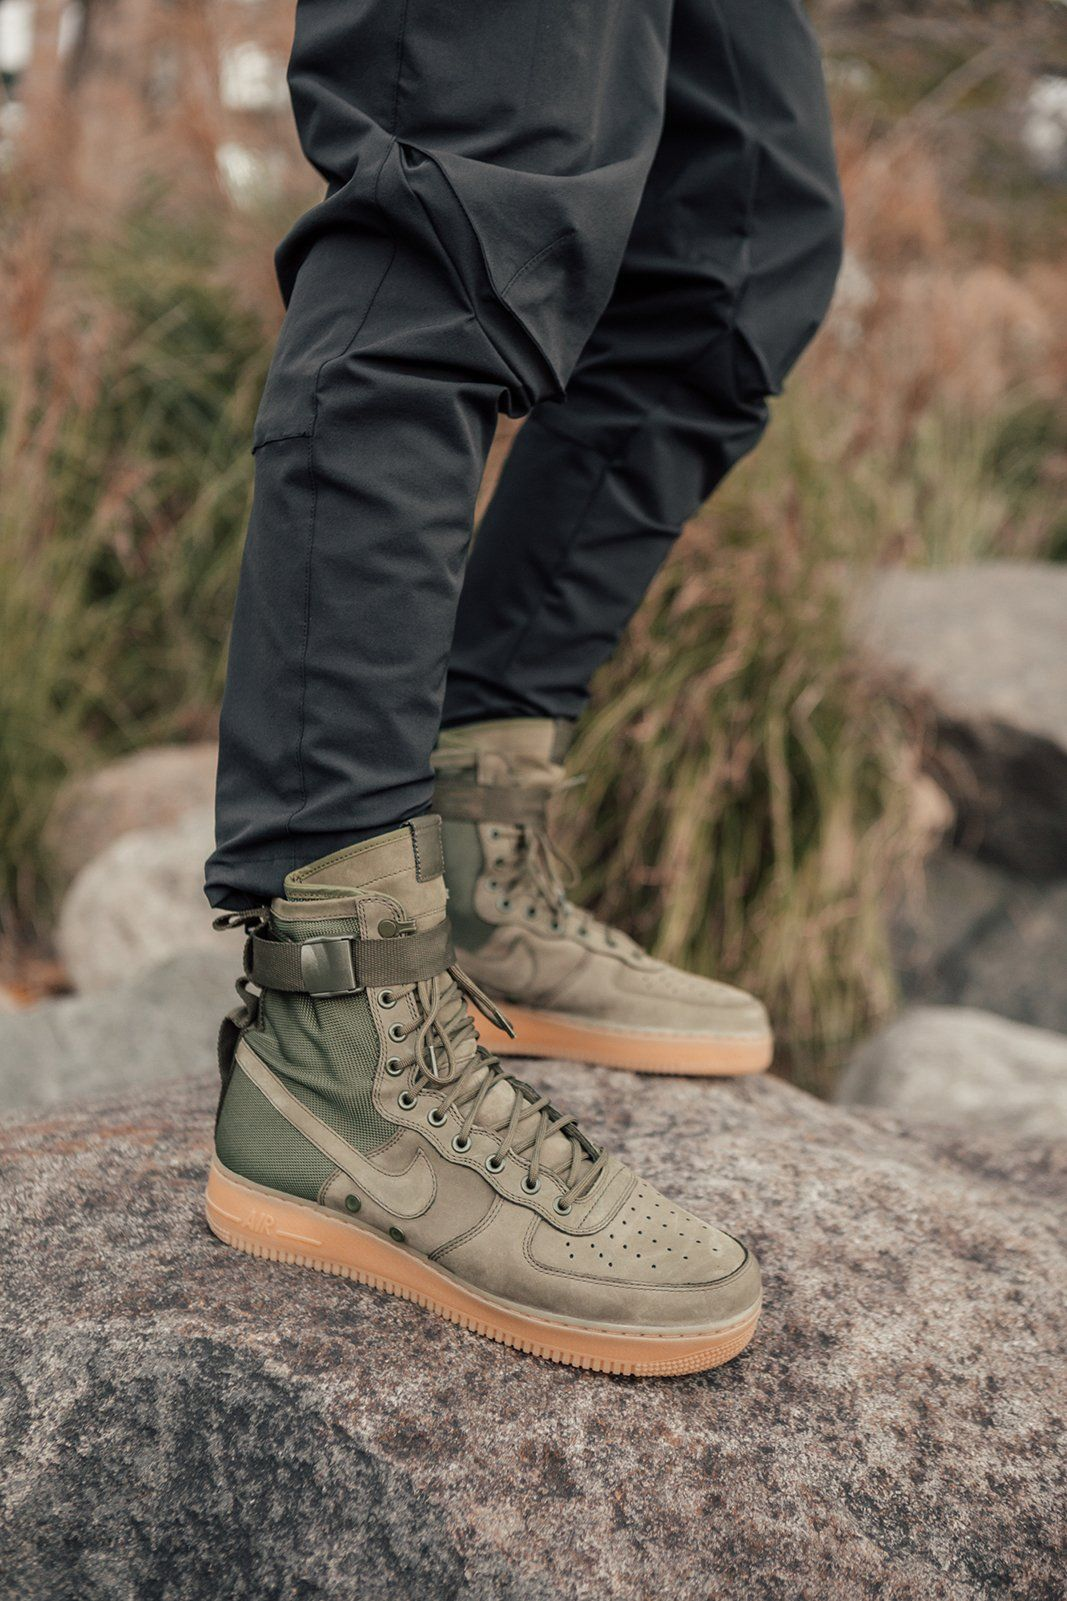 Kith Editorial for the Nike SF AF1 | Nike sf af1, Mens